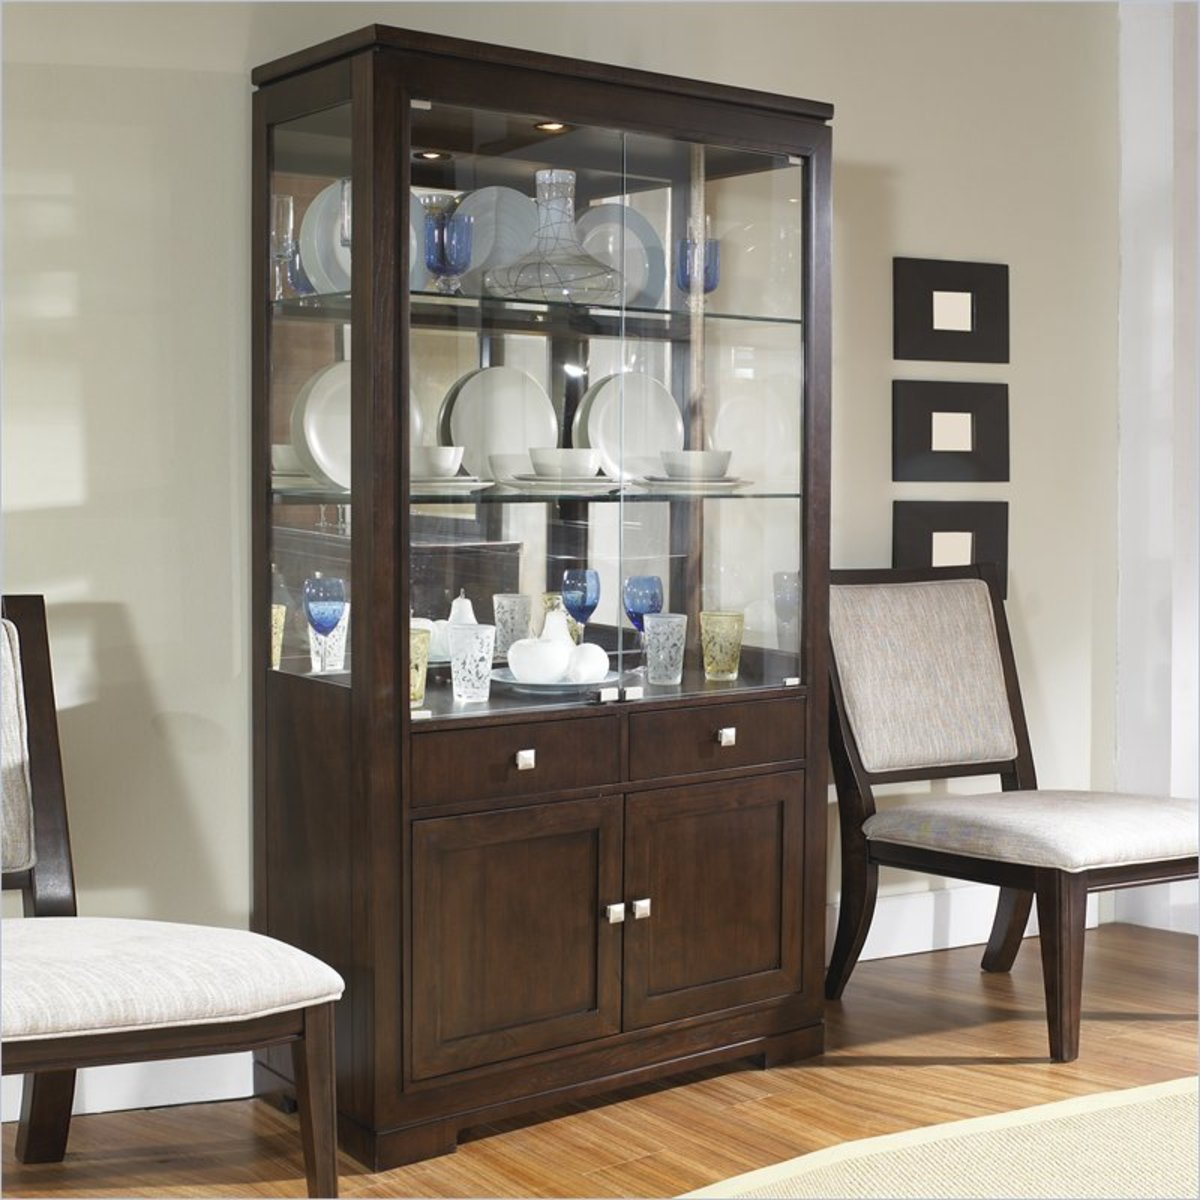 Photo:  www.furnitureshopping.com